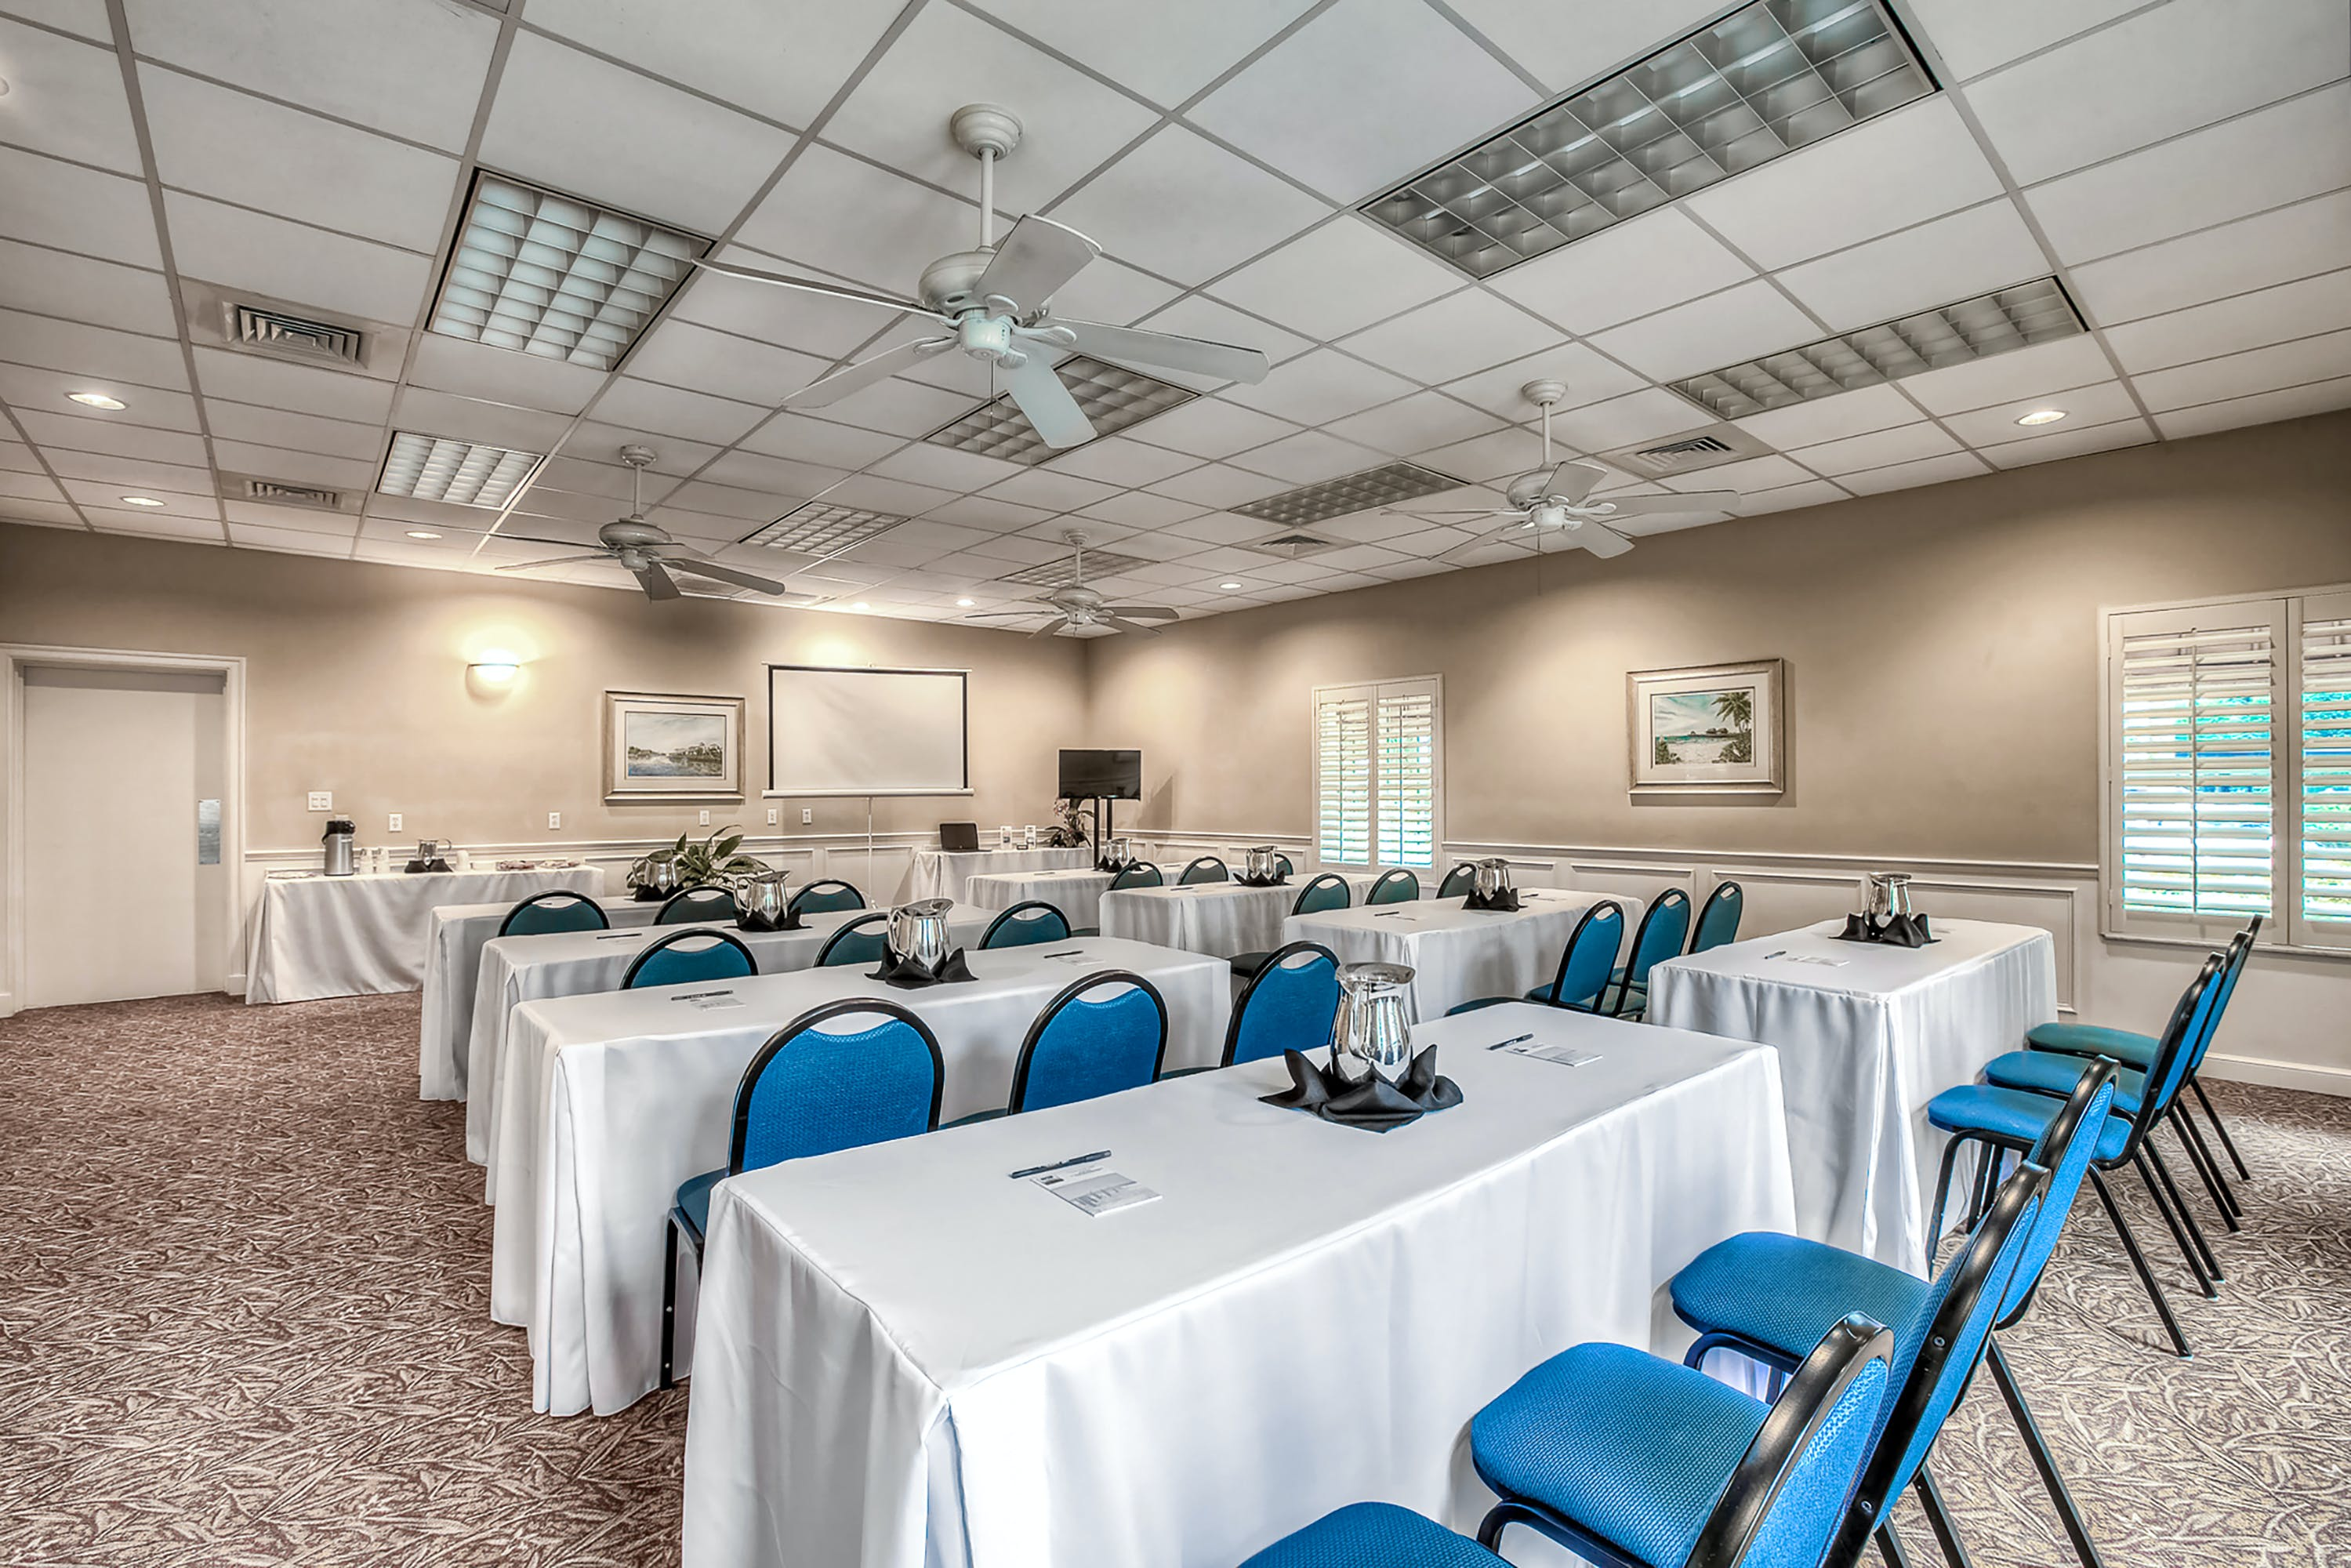 Tuscan Room meeting space with classroom-style setup